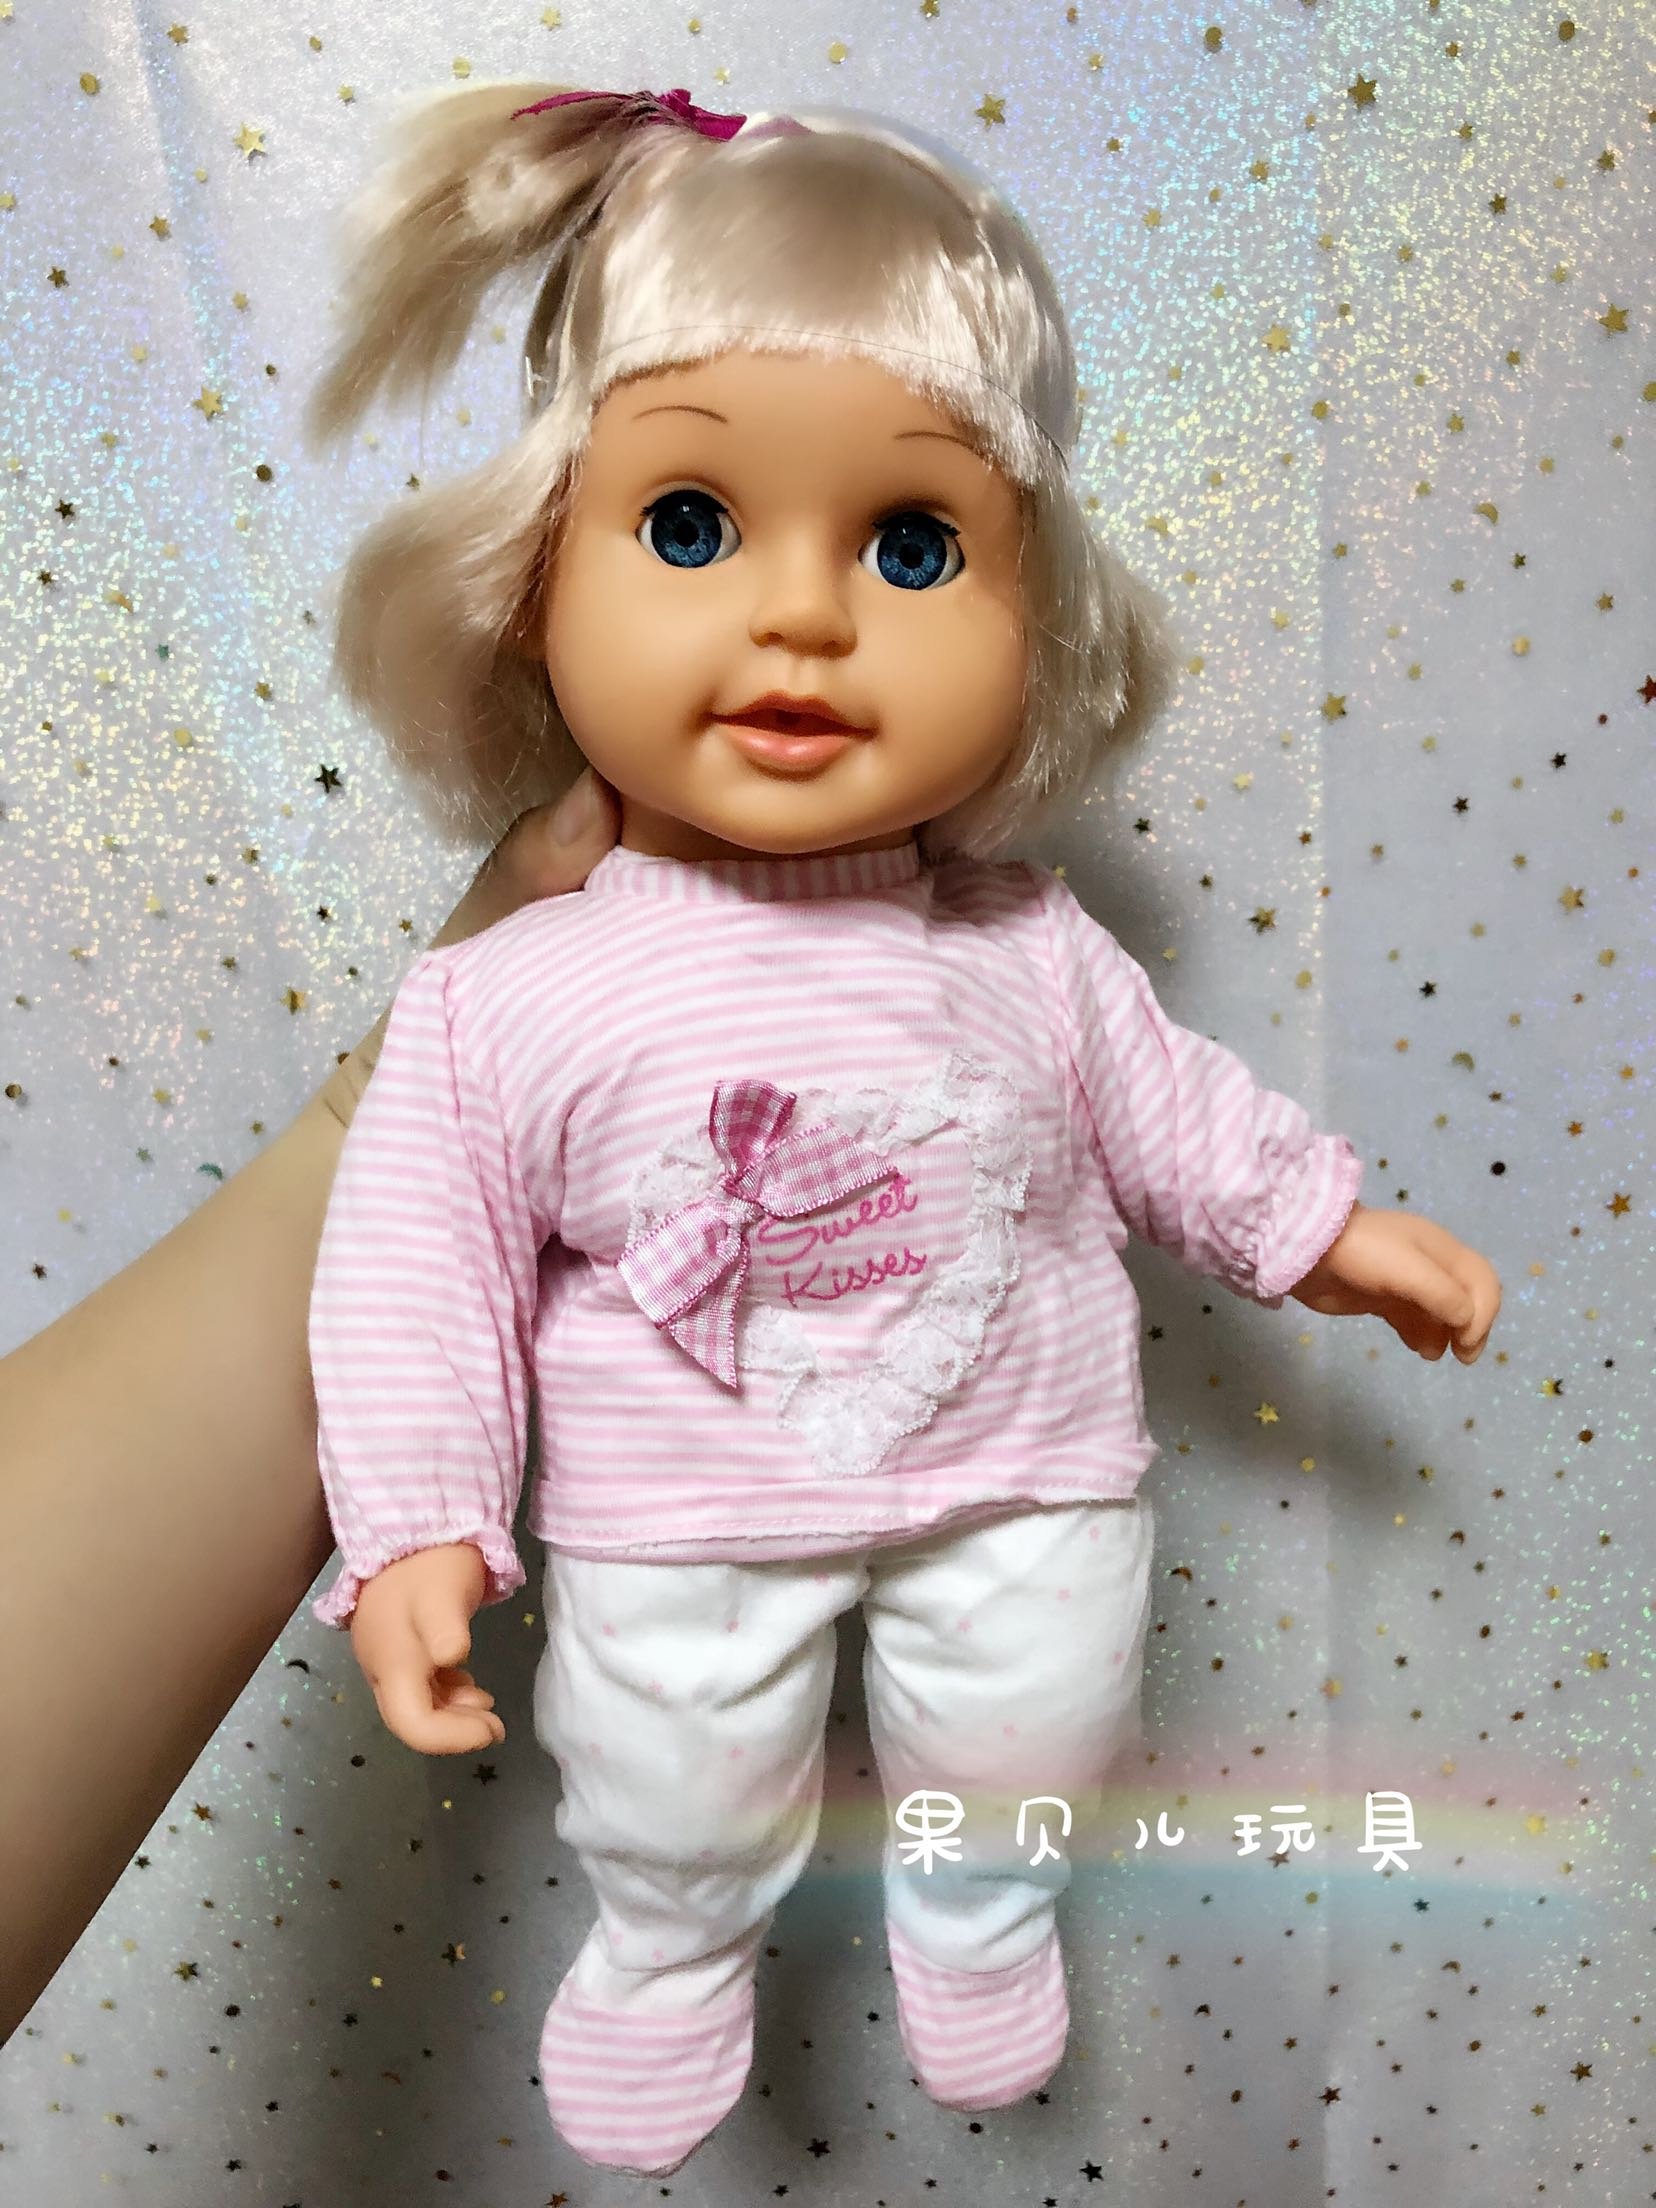 Cute Vintage Blink Eye Baby Doll Appease Accompany Sleep